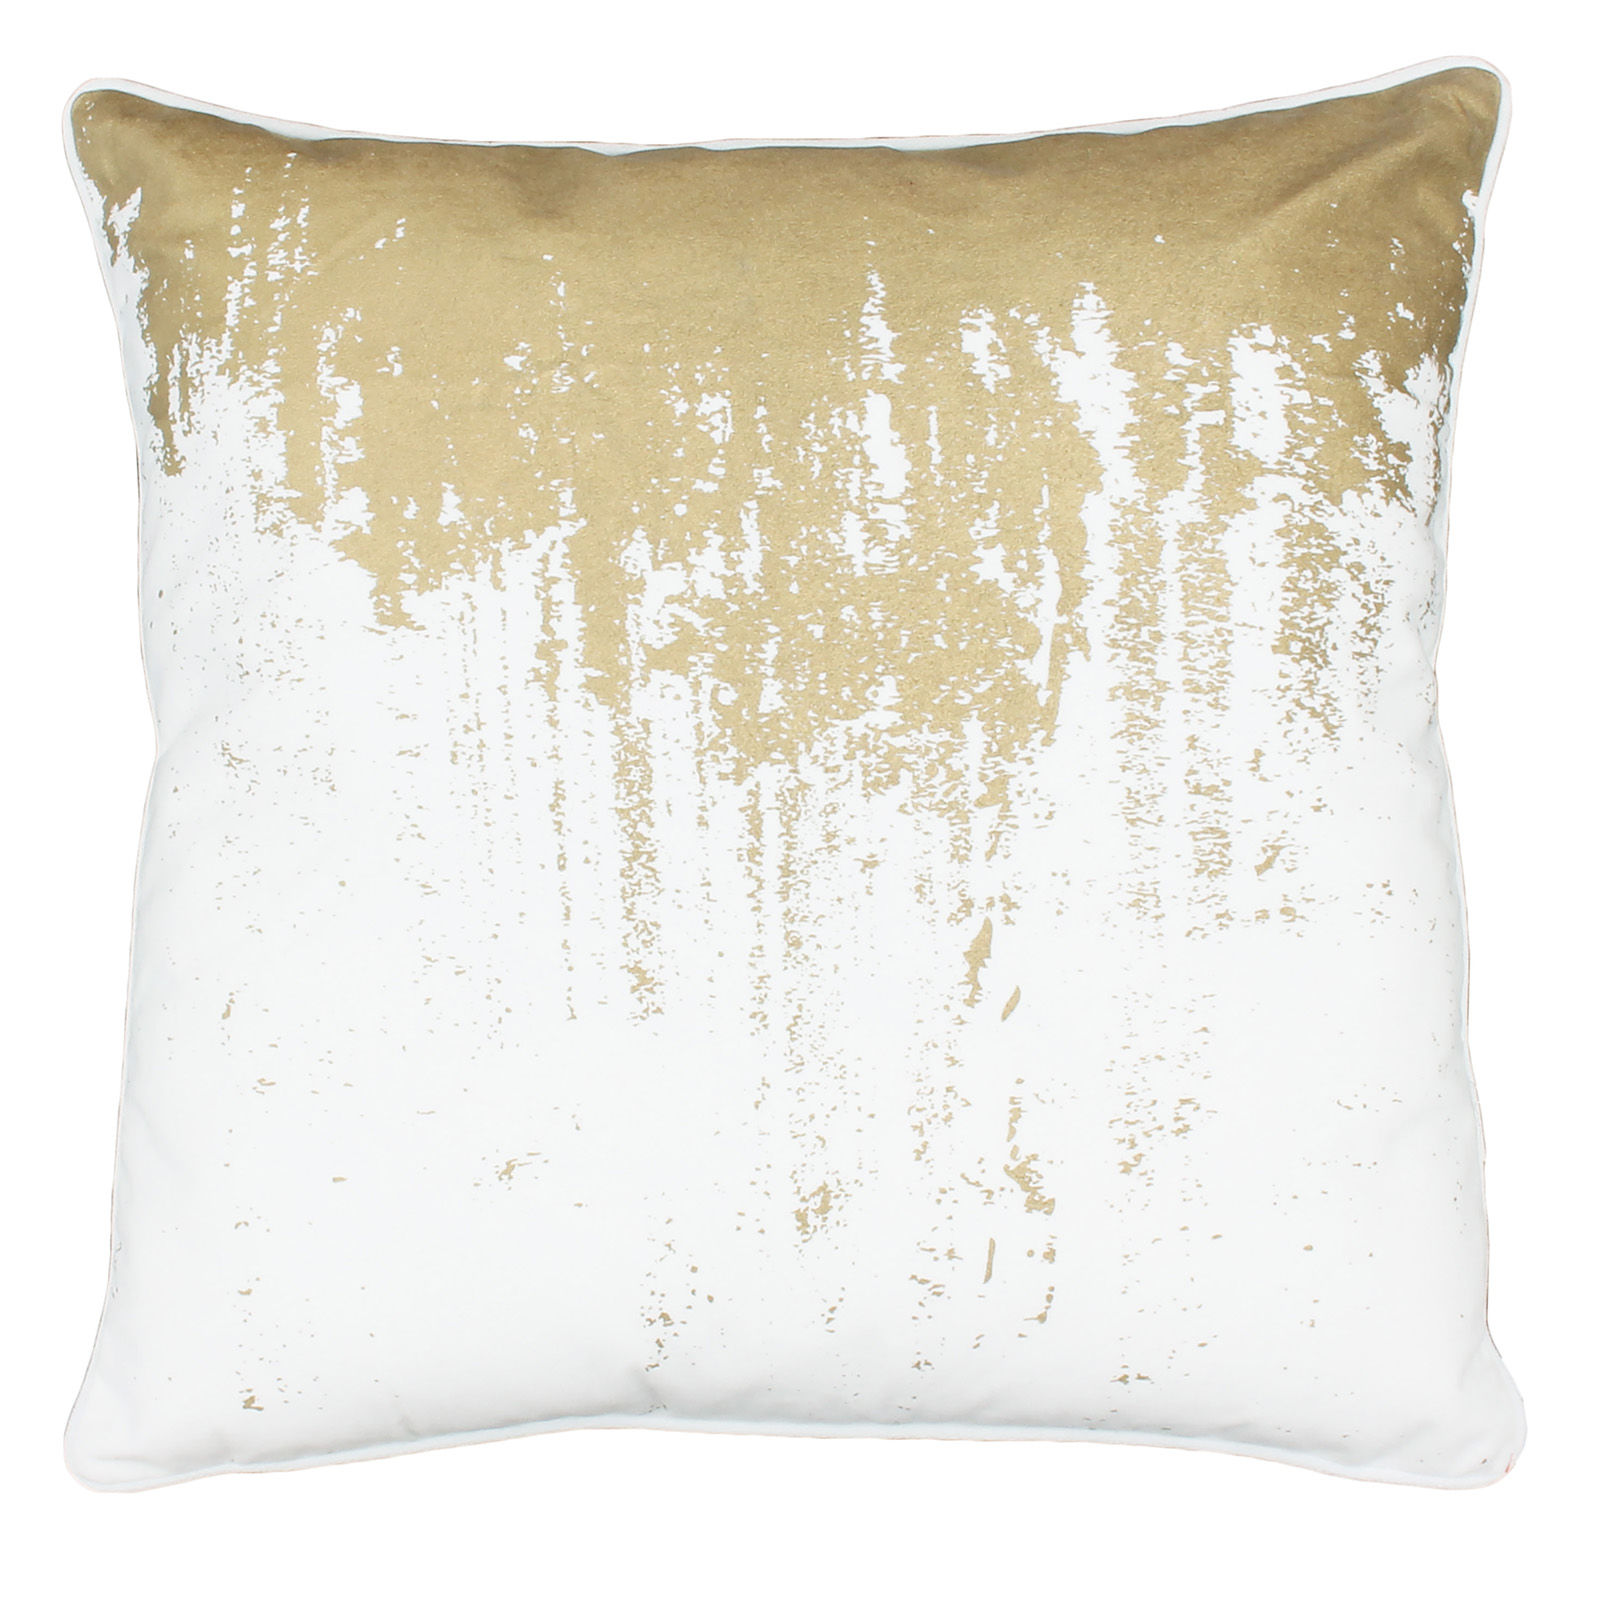 Throw Pillow Sets | Mint Pillows | Gold Throw Pillows